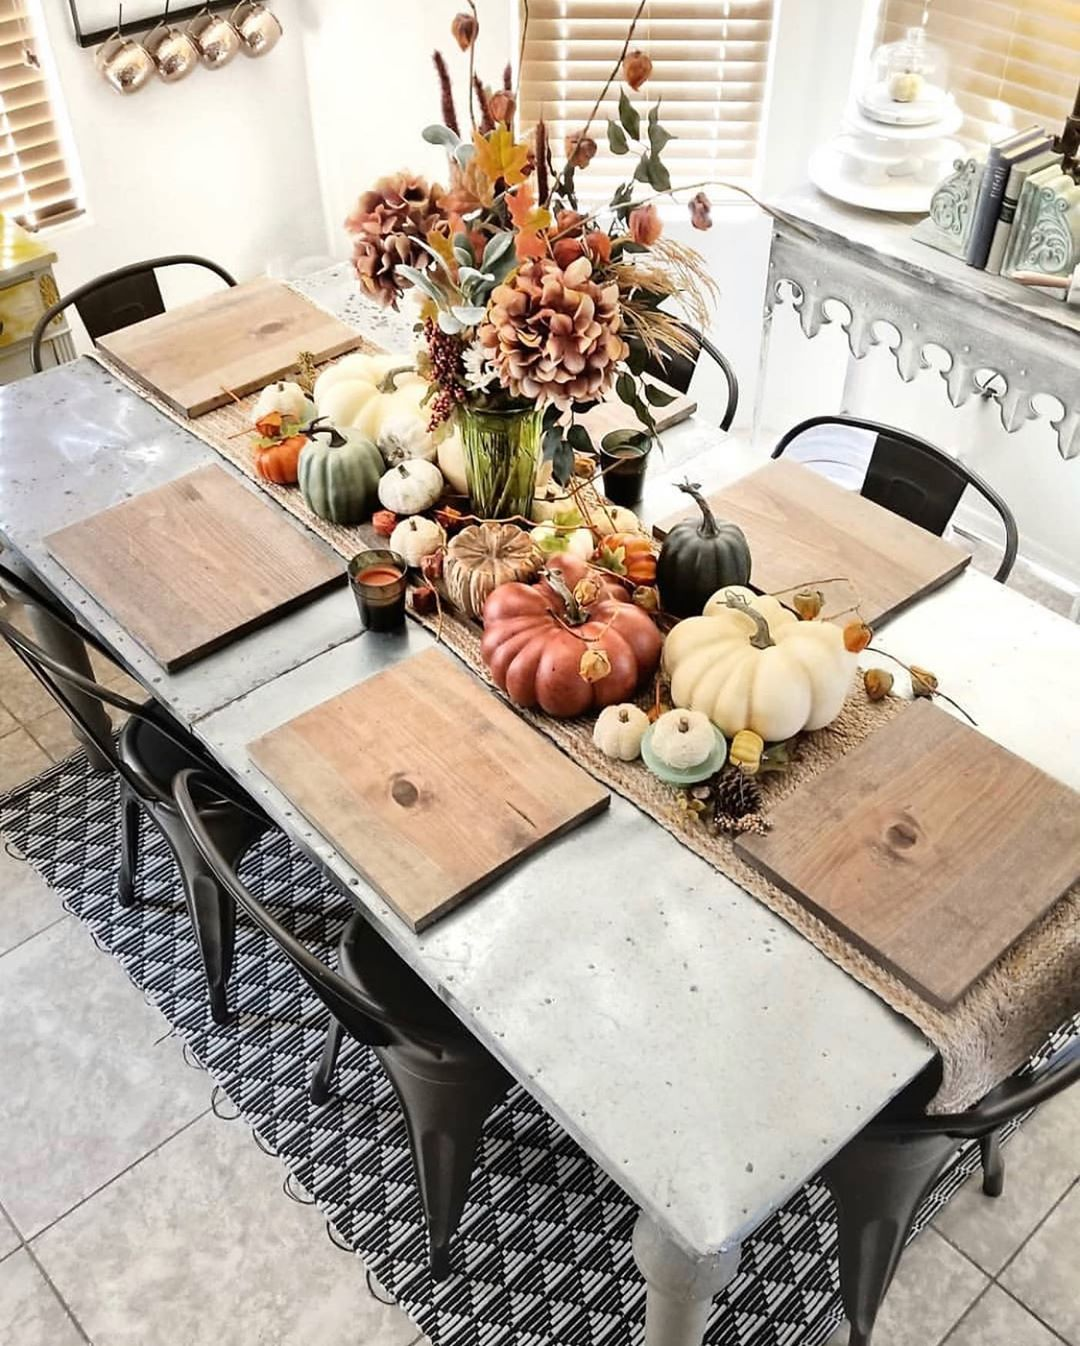 1570190898 962 funky fresh fall tablescapes from instagram - Funky Fresh Fall Tablescapes From Instagram